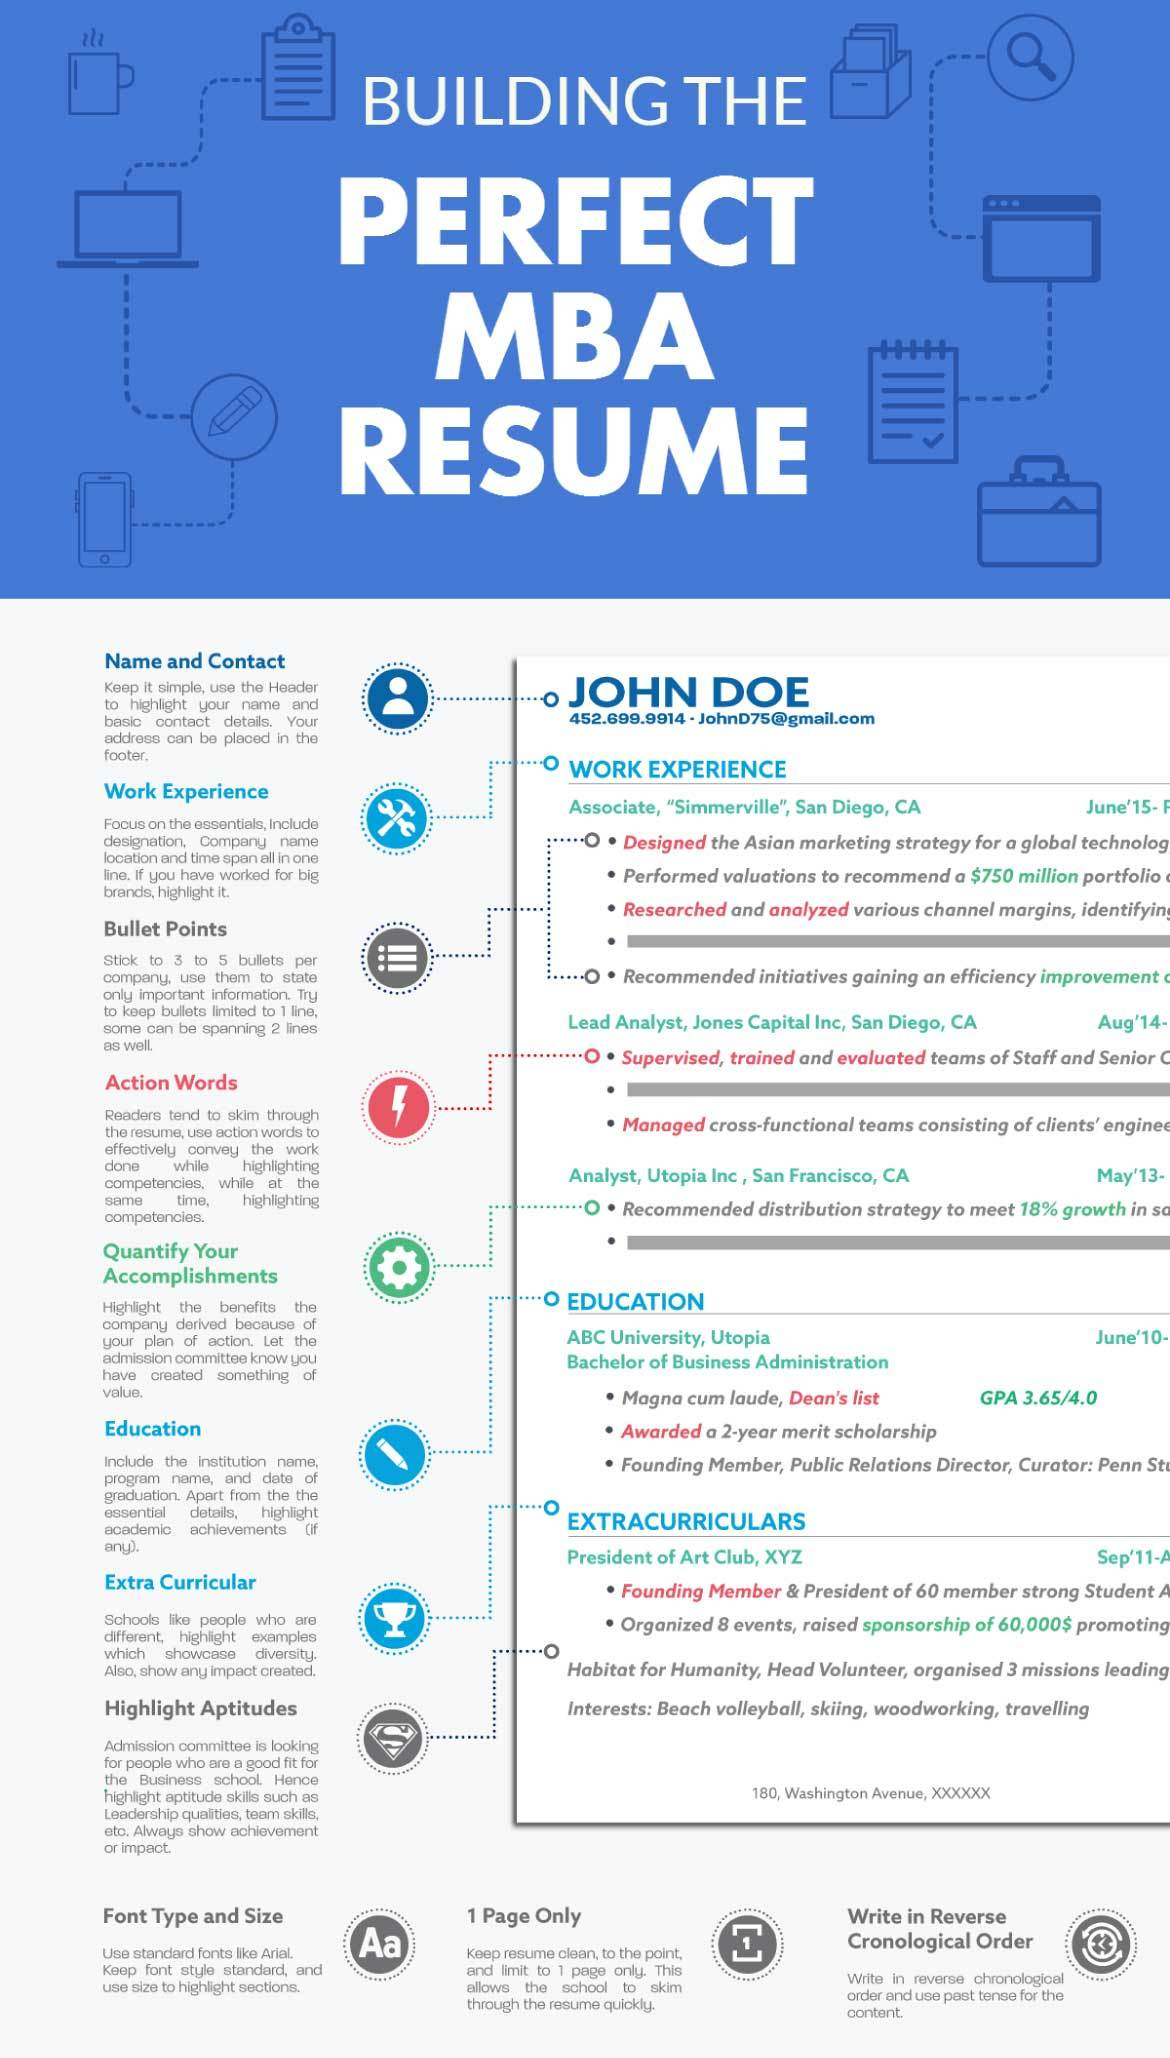 Sample Resume For Mba Admission 10 Steps Towards Creating The Perfect Mba Resume